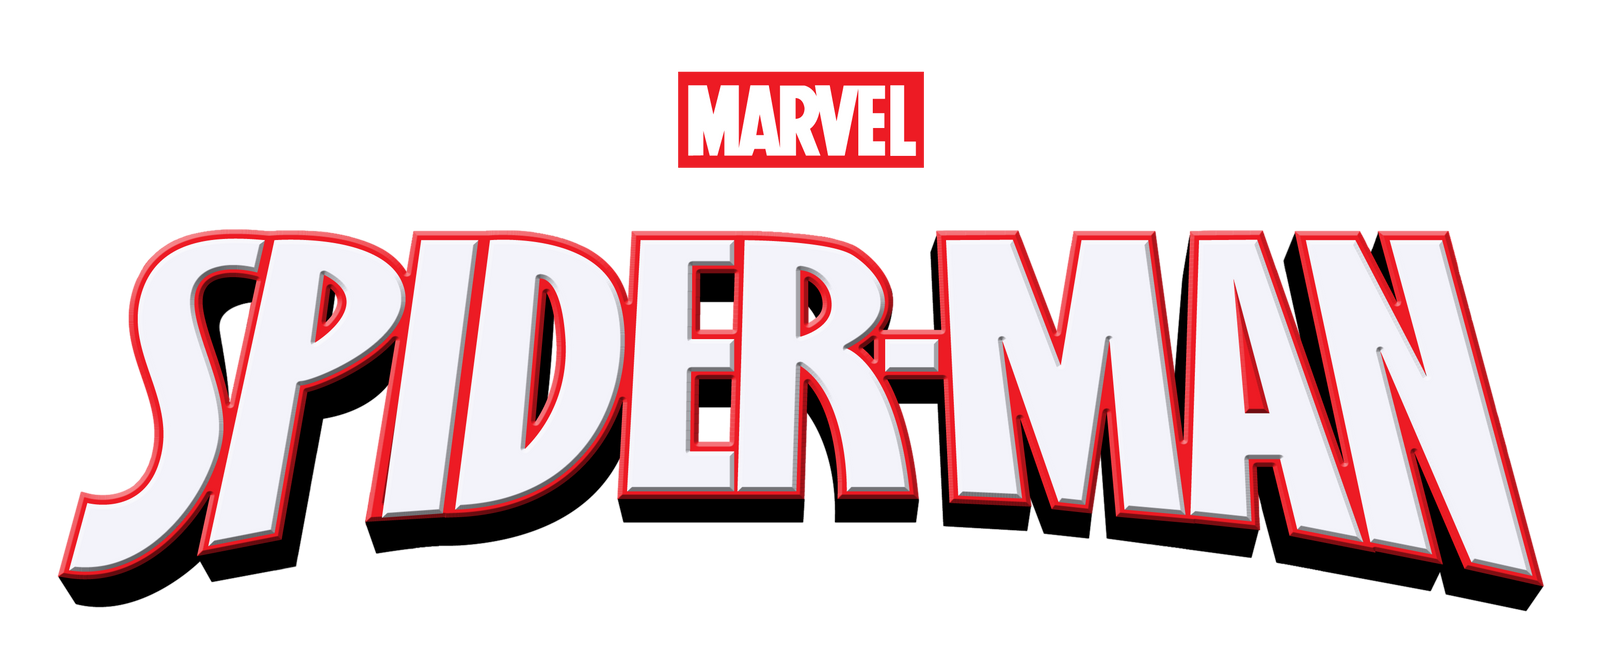 mcu spider man logo by thedarkinght on deviantart rh thedarkinght deviantart com spider man 3 gomovies spiderman 3 coloring pages